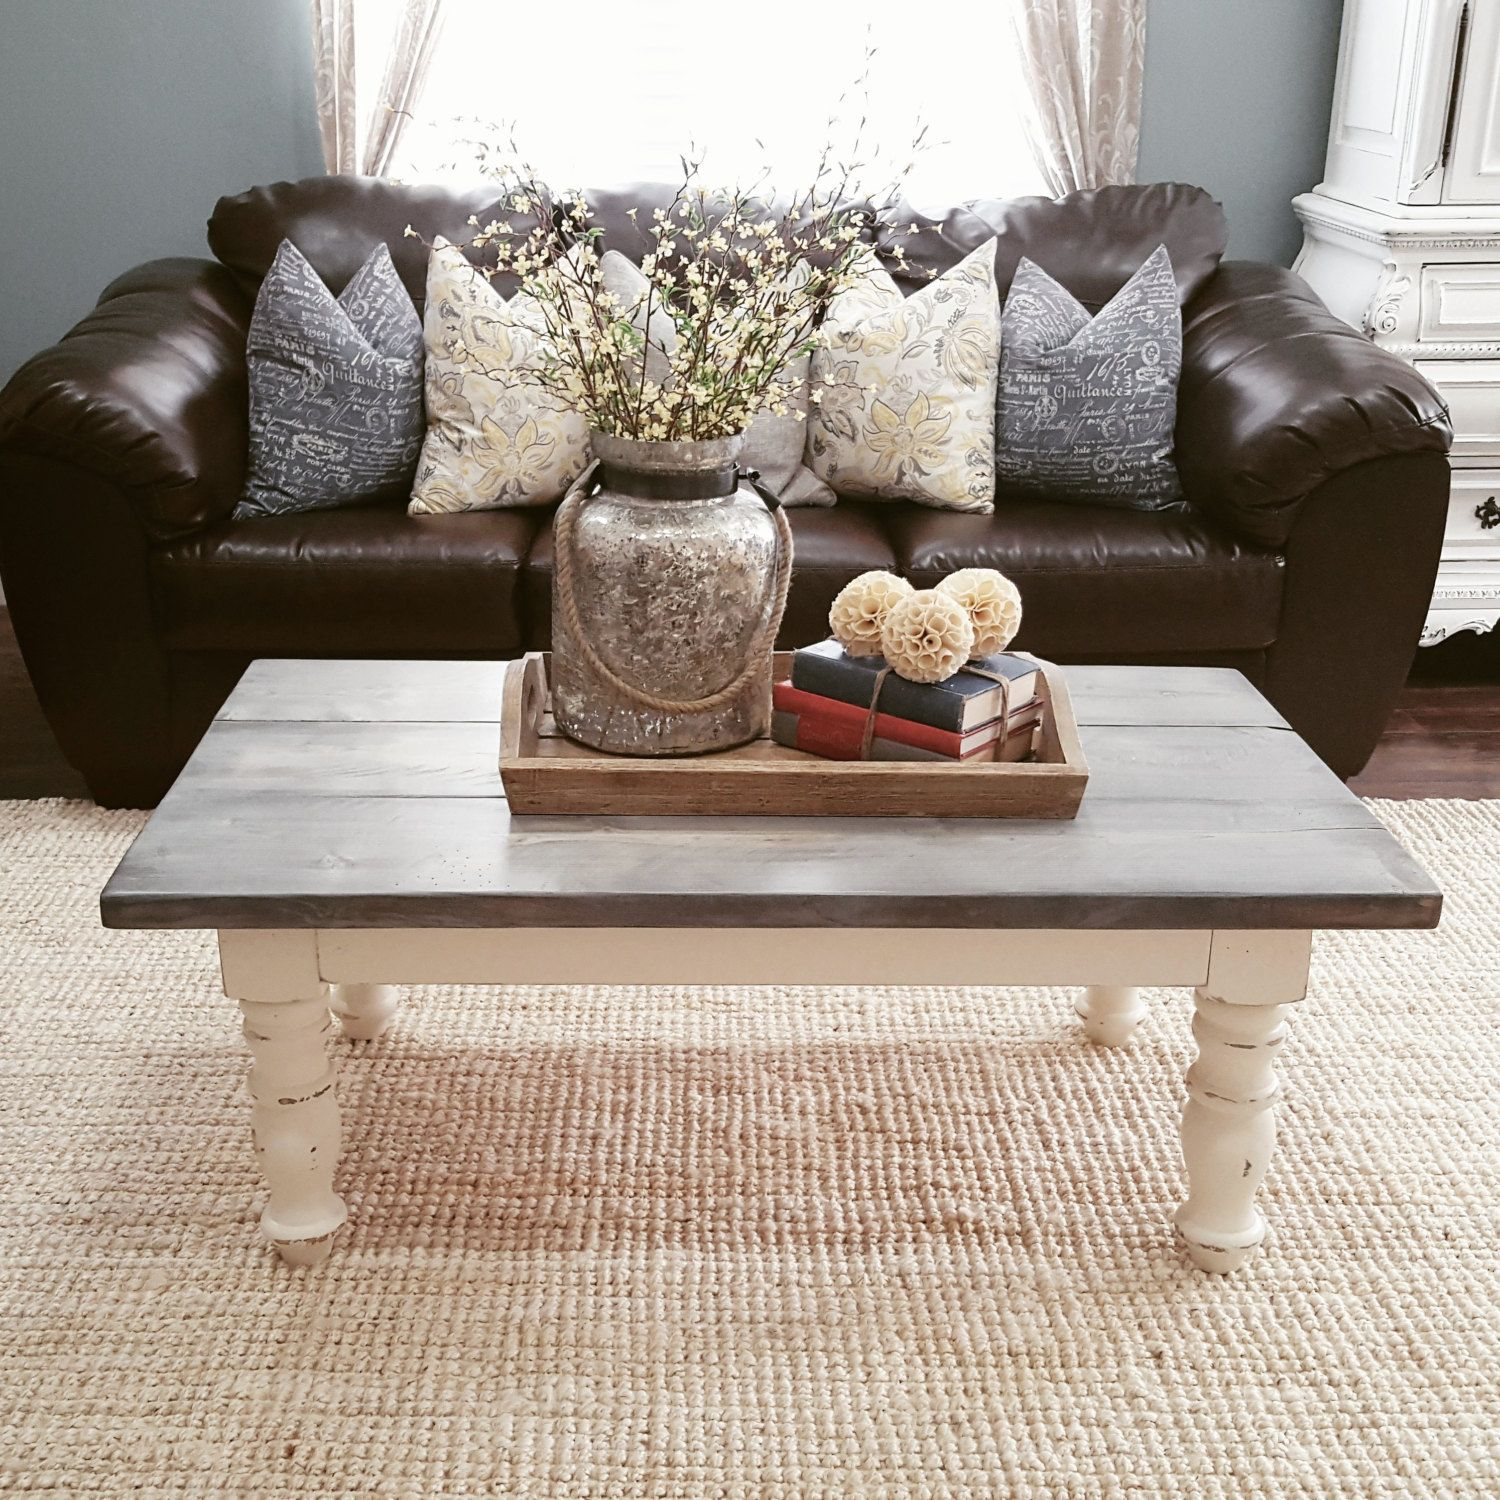 Handmade Rustic Coffee Table Table Decor Living Room Decorating